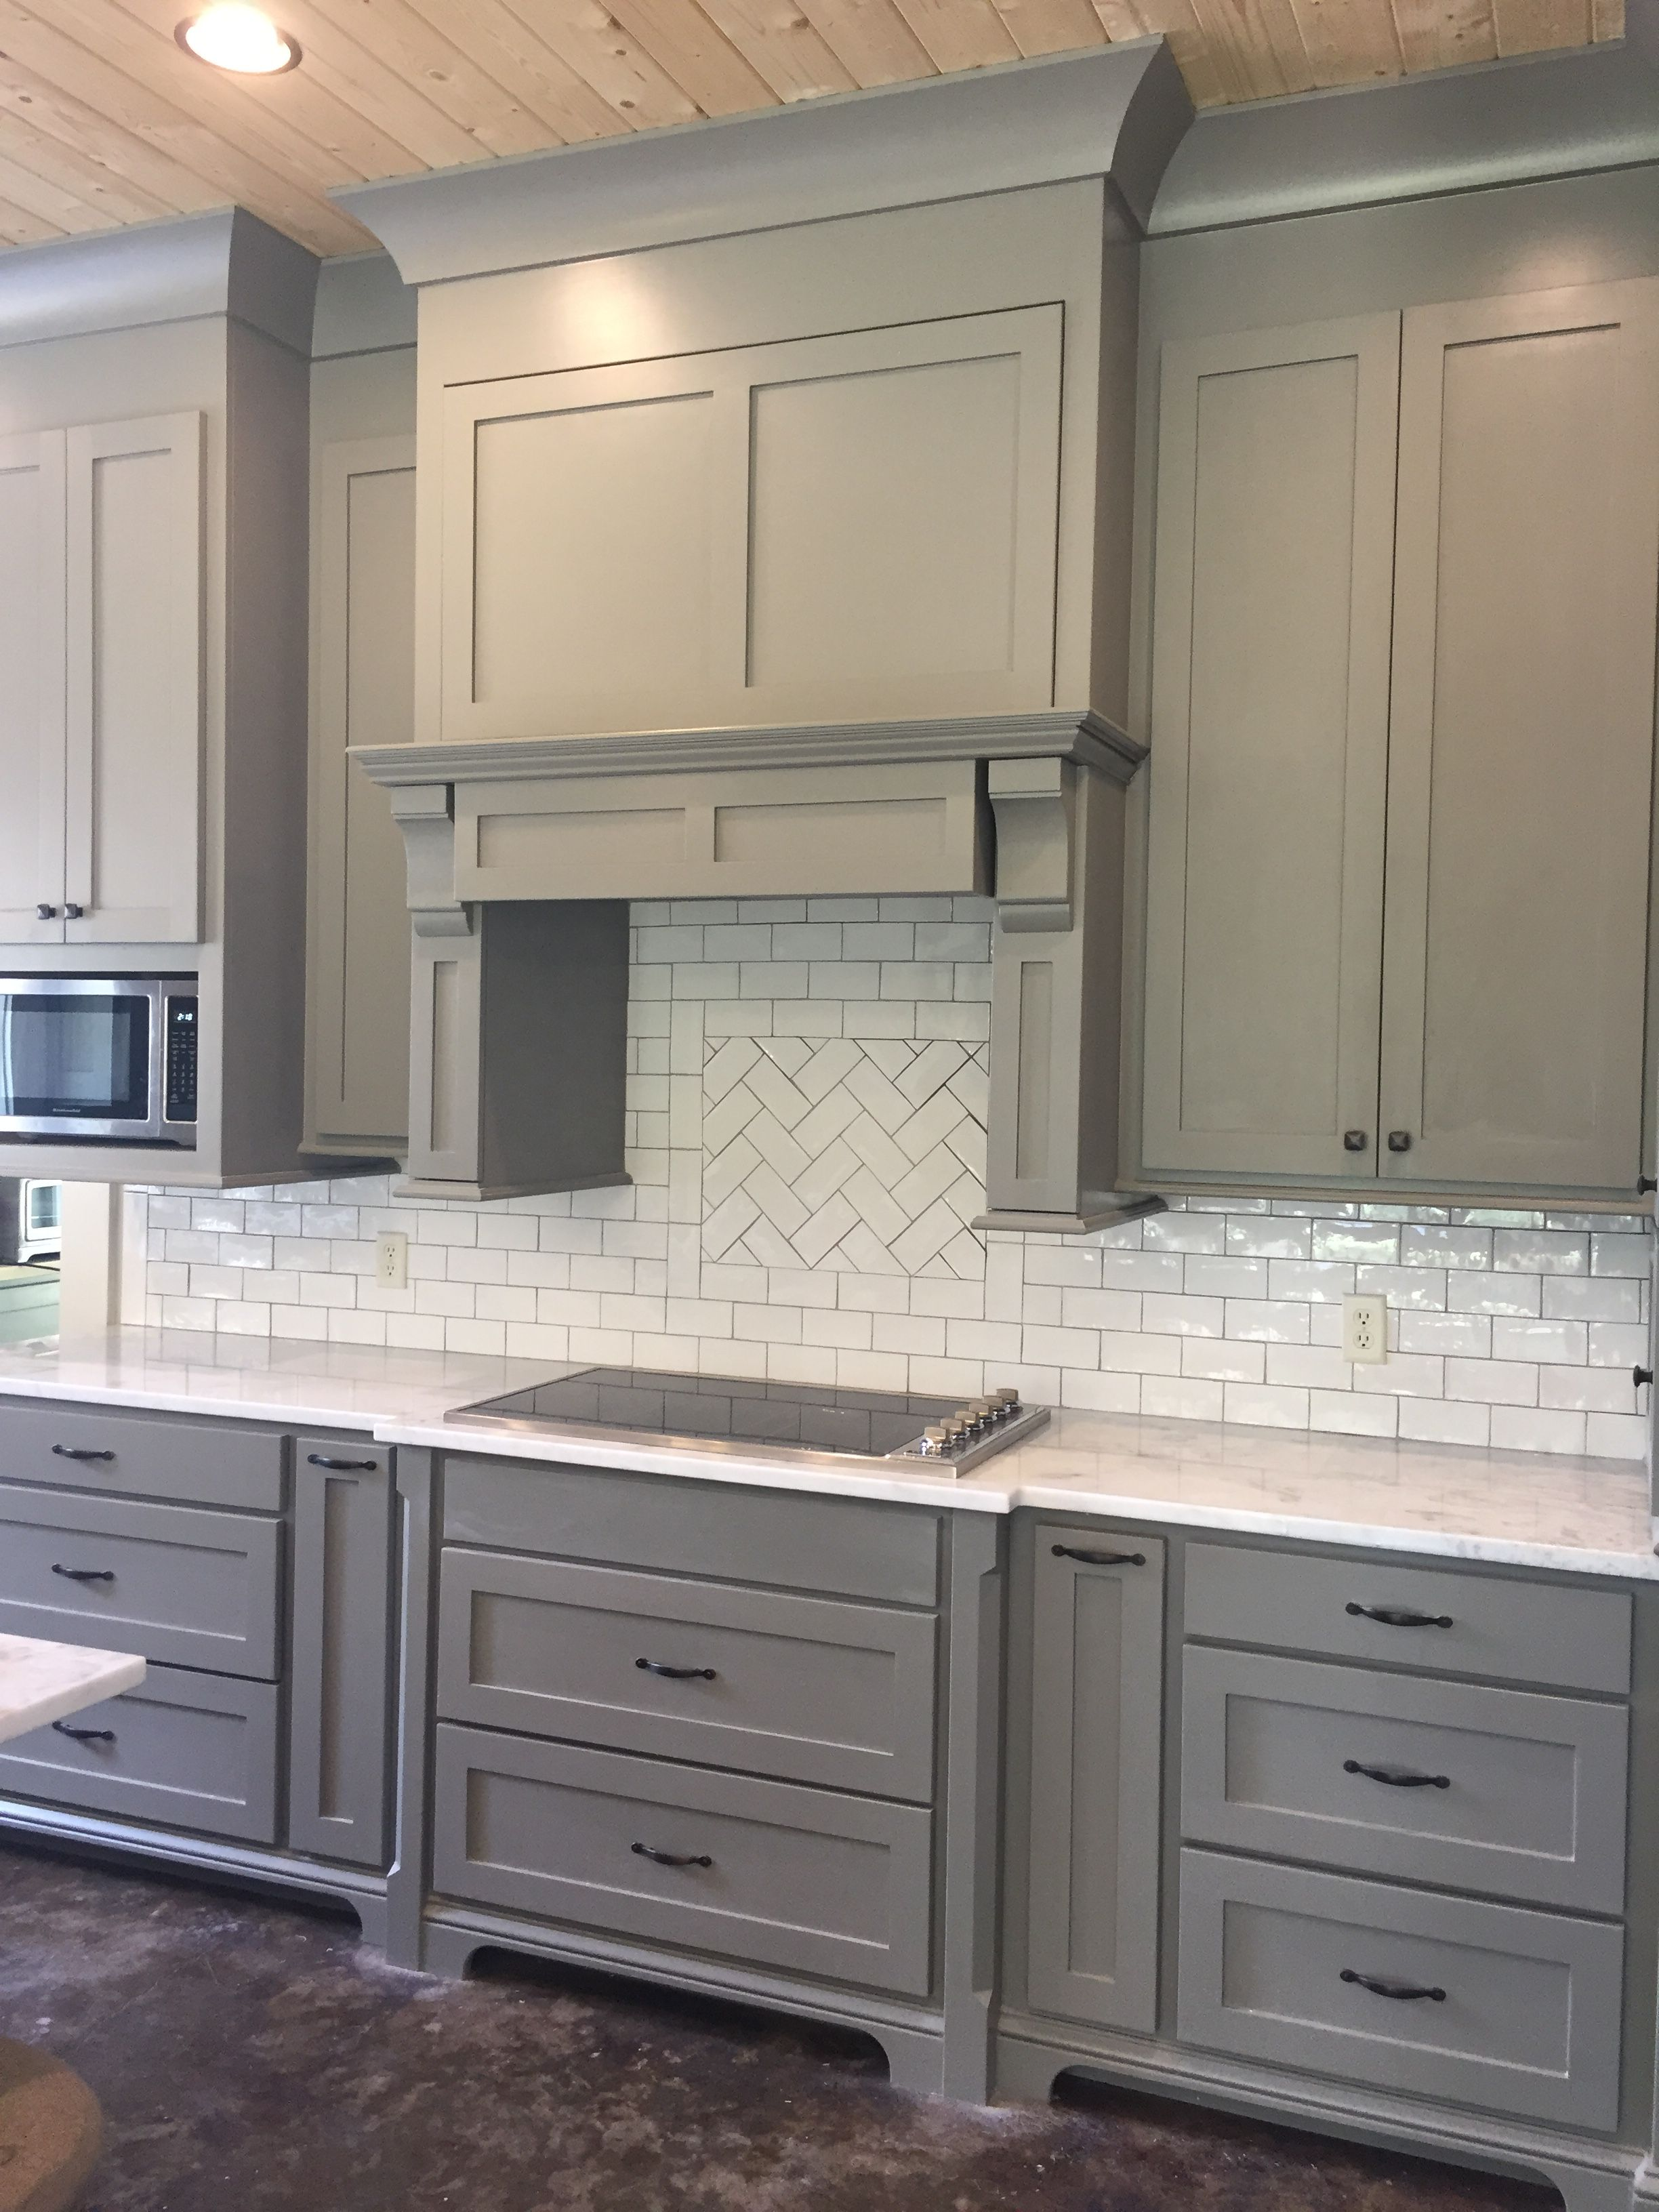 And The Winner Is Chelsea Gray Benjamin Moore This Will Be The Color For The Kitchen Cabinets Hc Comfortable Kitchen Kitchen Remodel Kitchen Inspirations